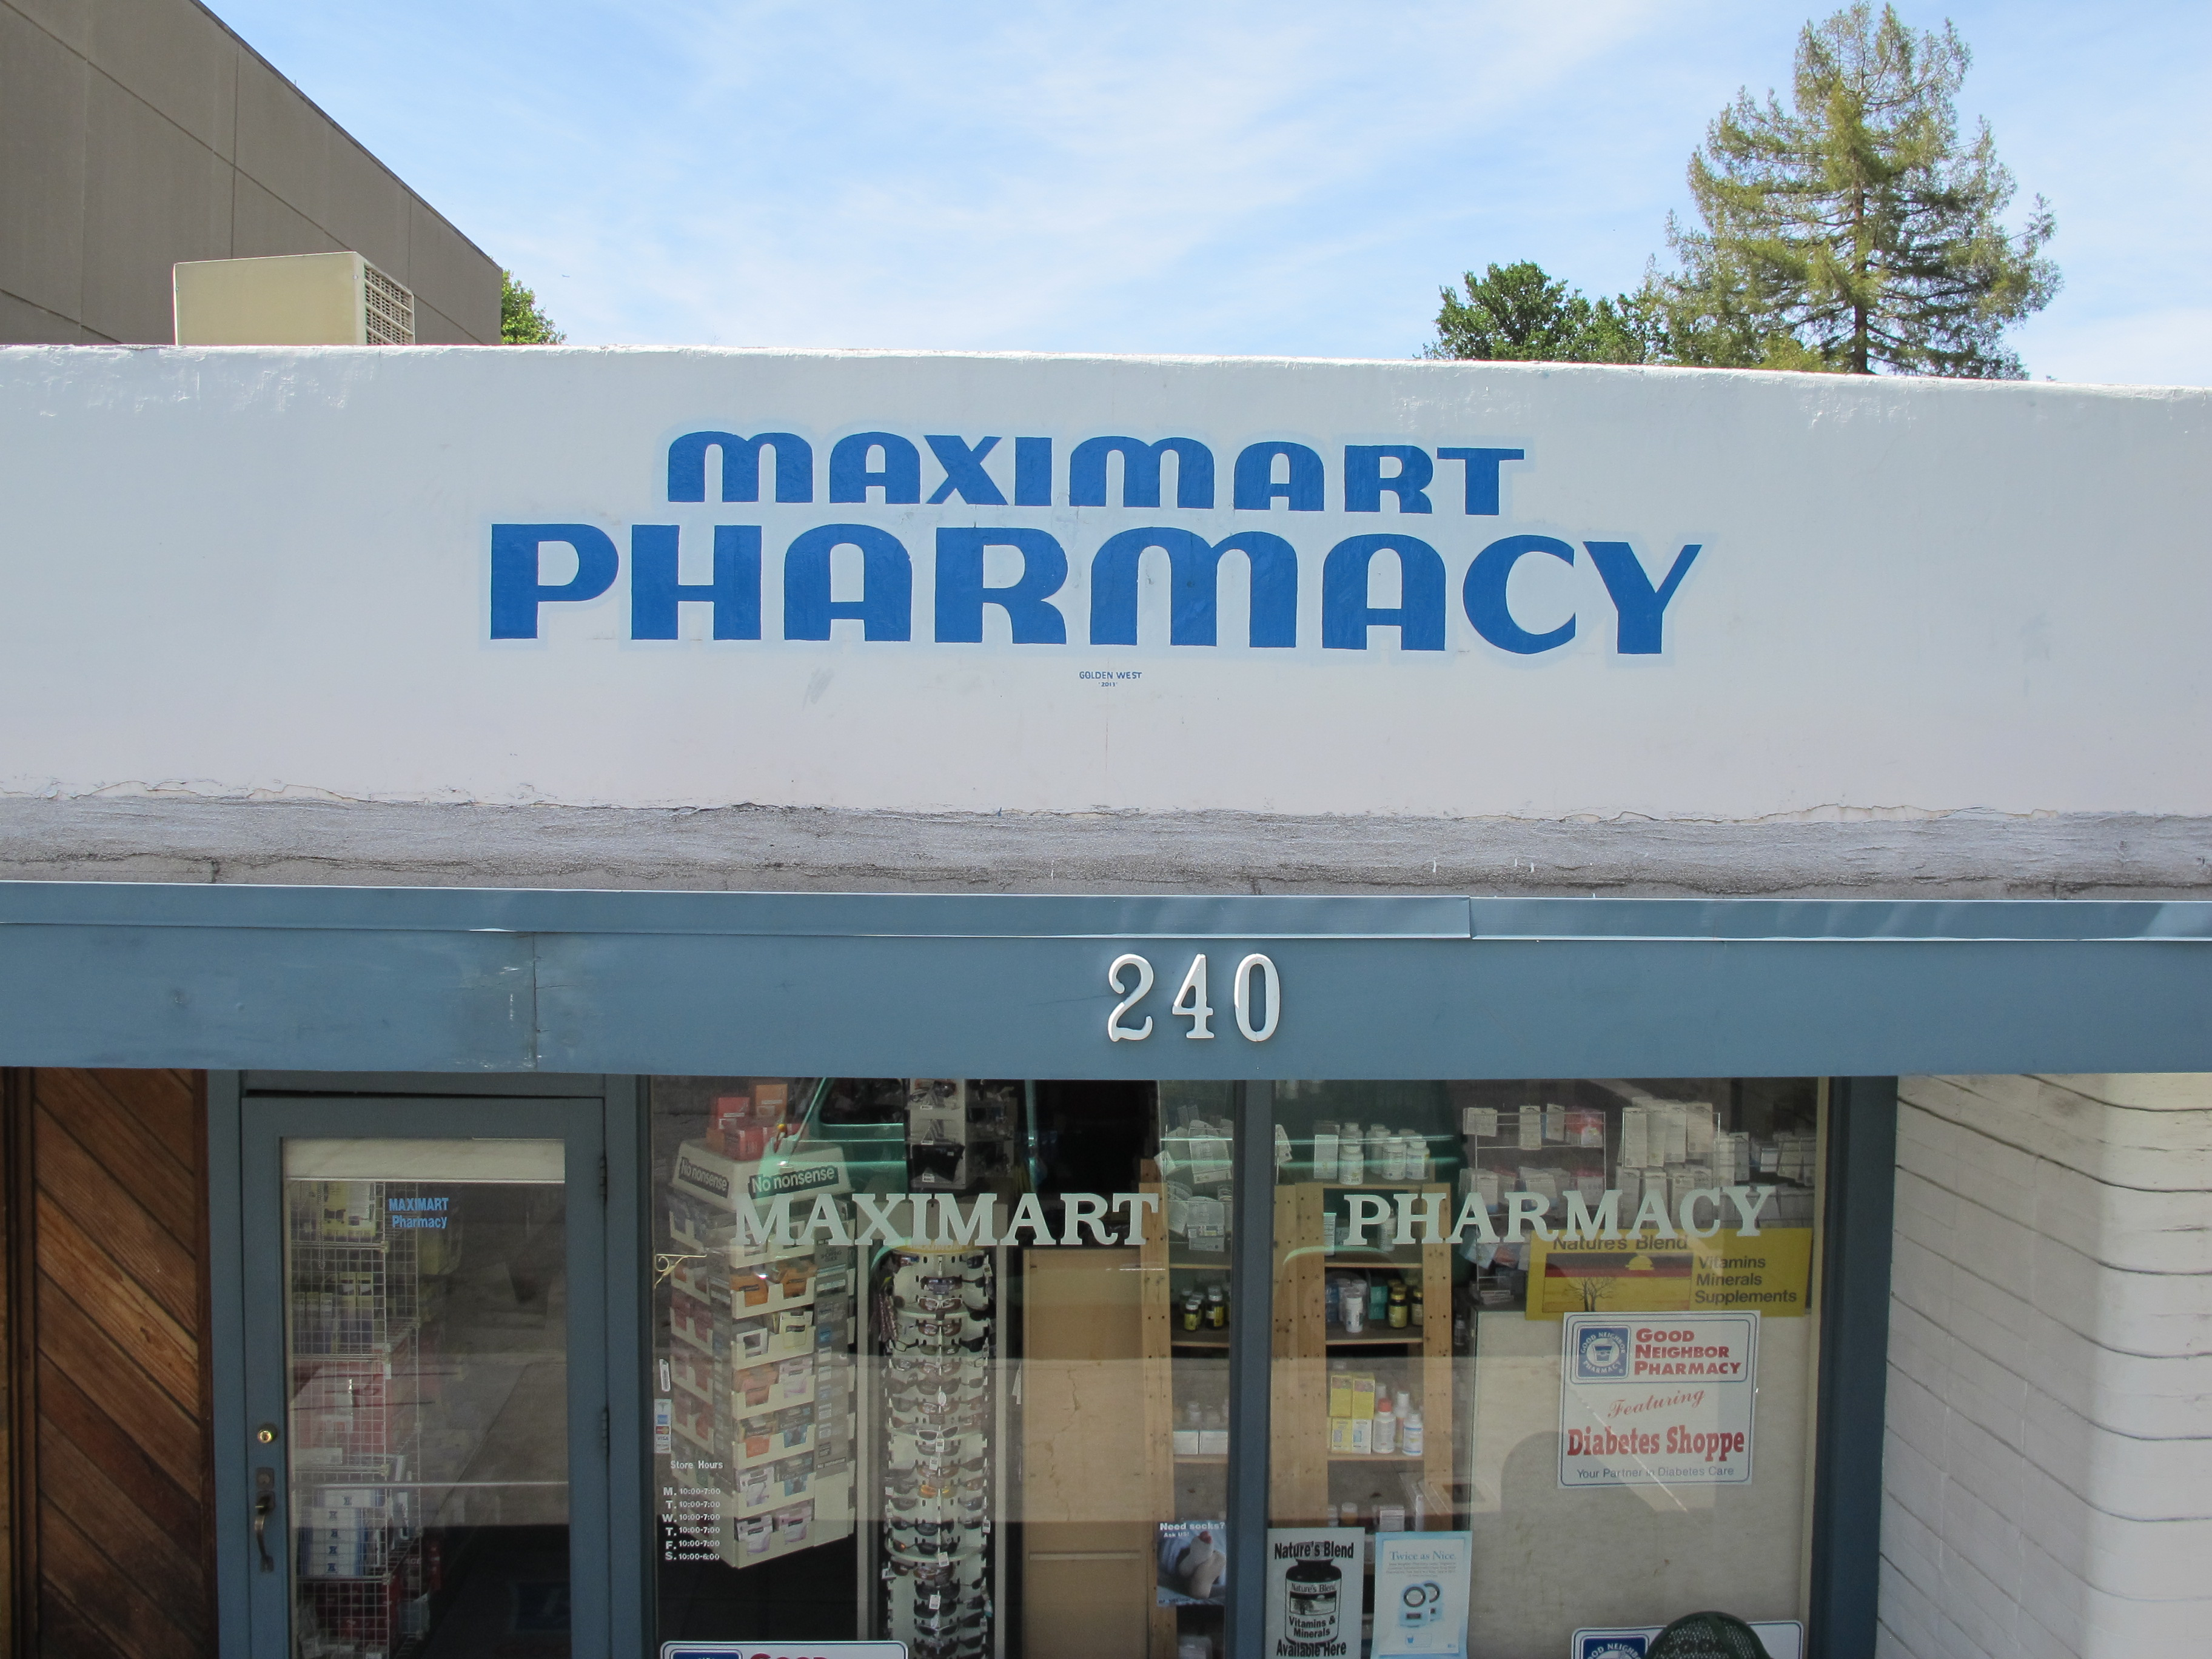 Maximart Pharmacy